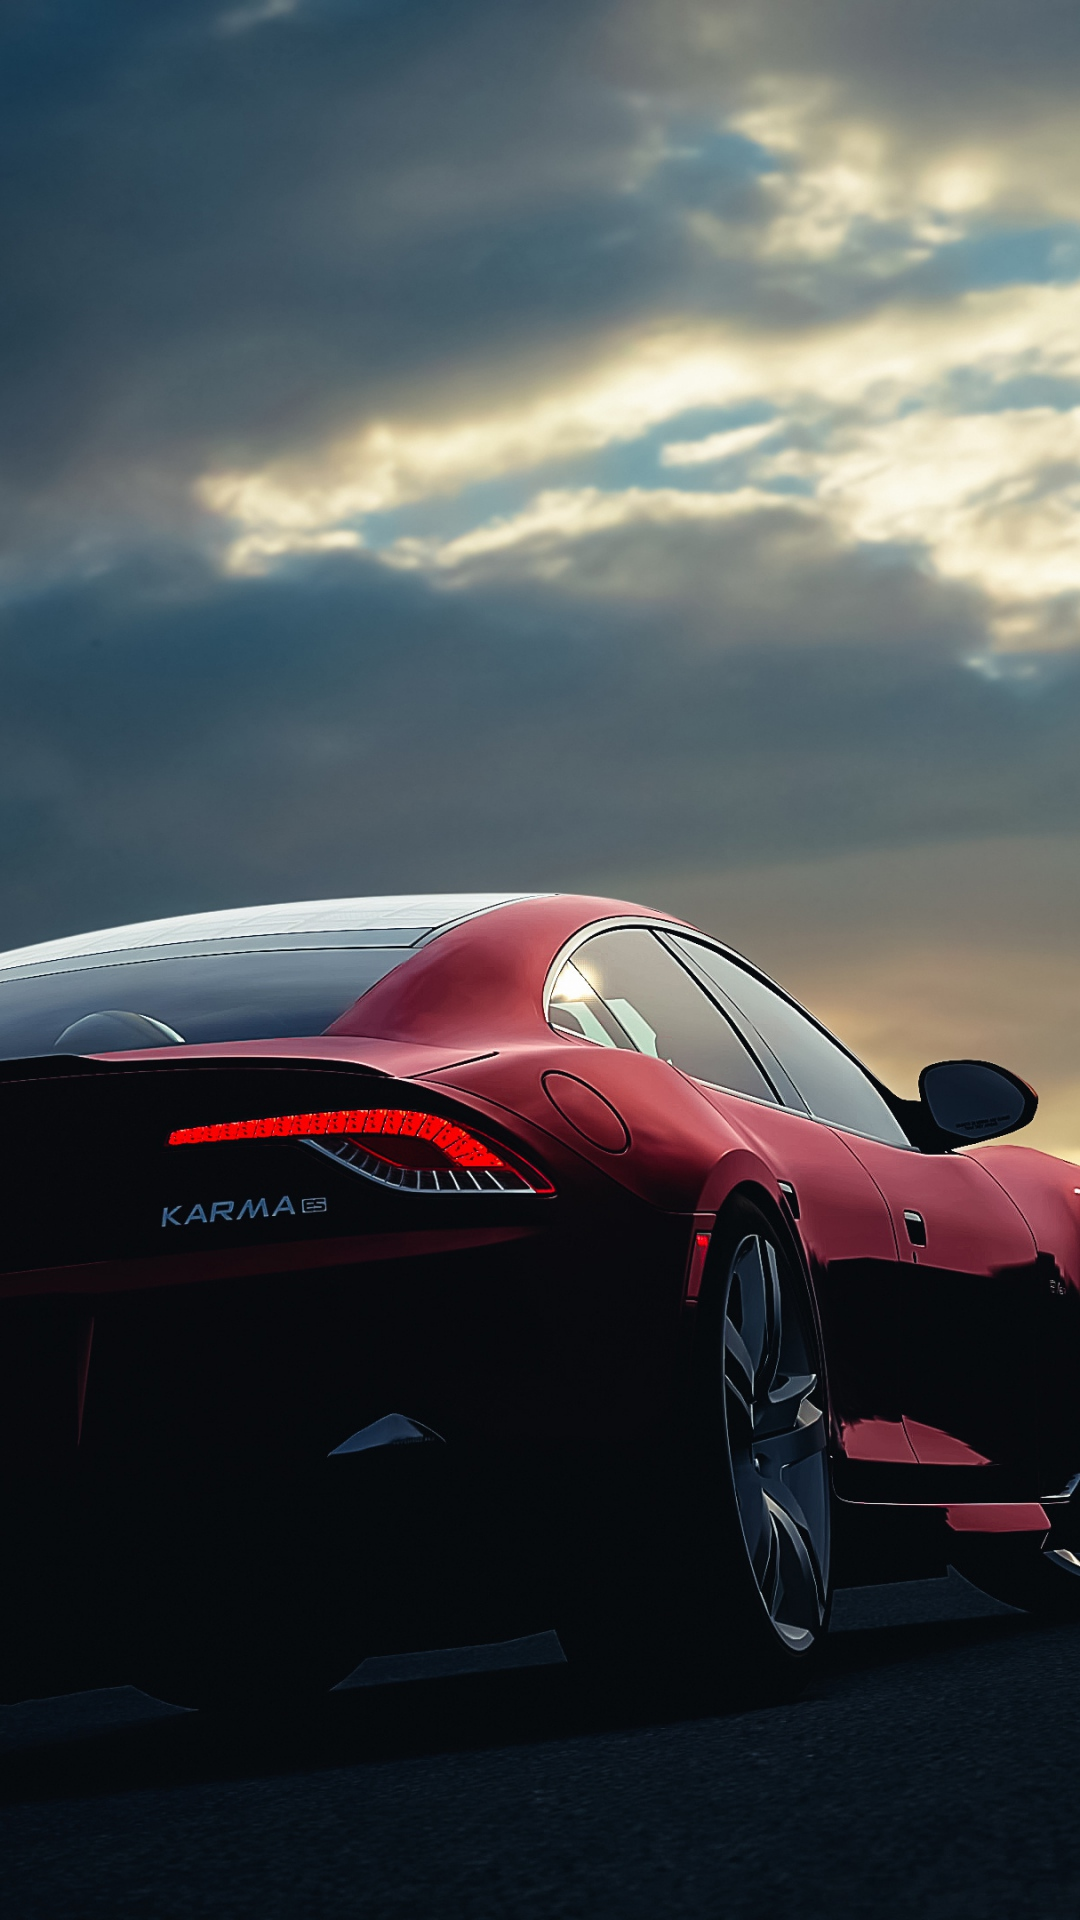 Latest Phone Wallpaper Popular Car Wallpapers For Iphone 6 At Image